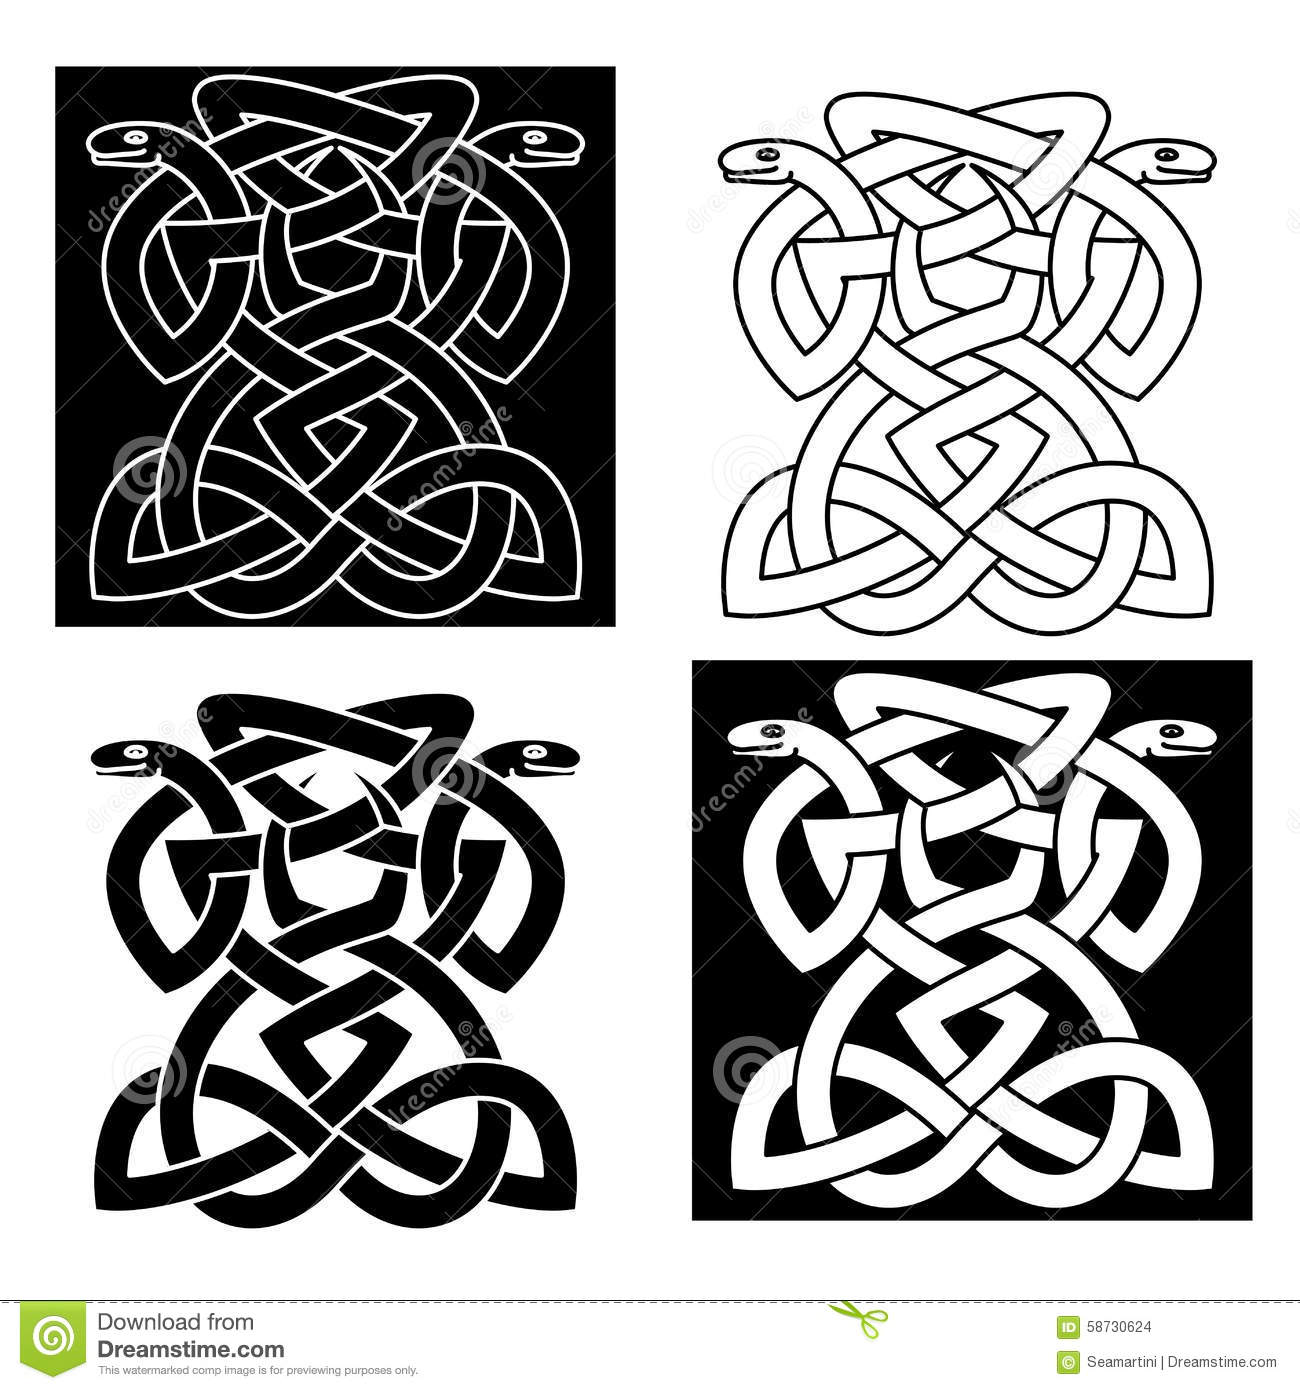 intricate intertwined snakes emblem stock vector. Black Bedroom Furniture Sets. Home Design Ideas